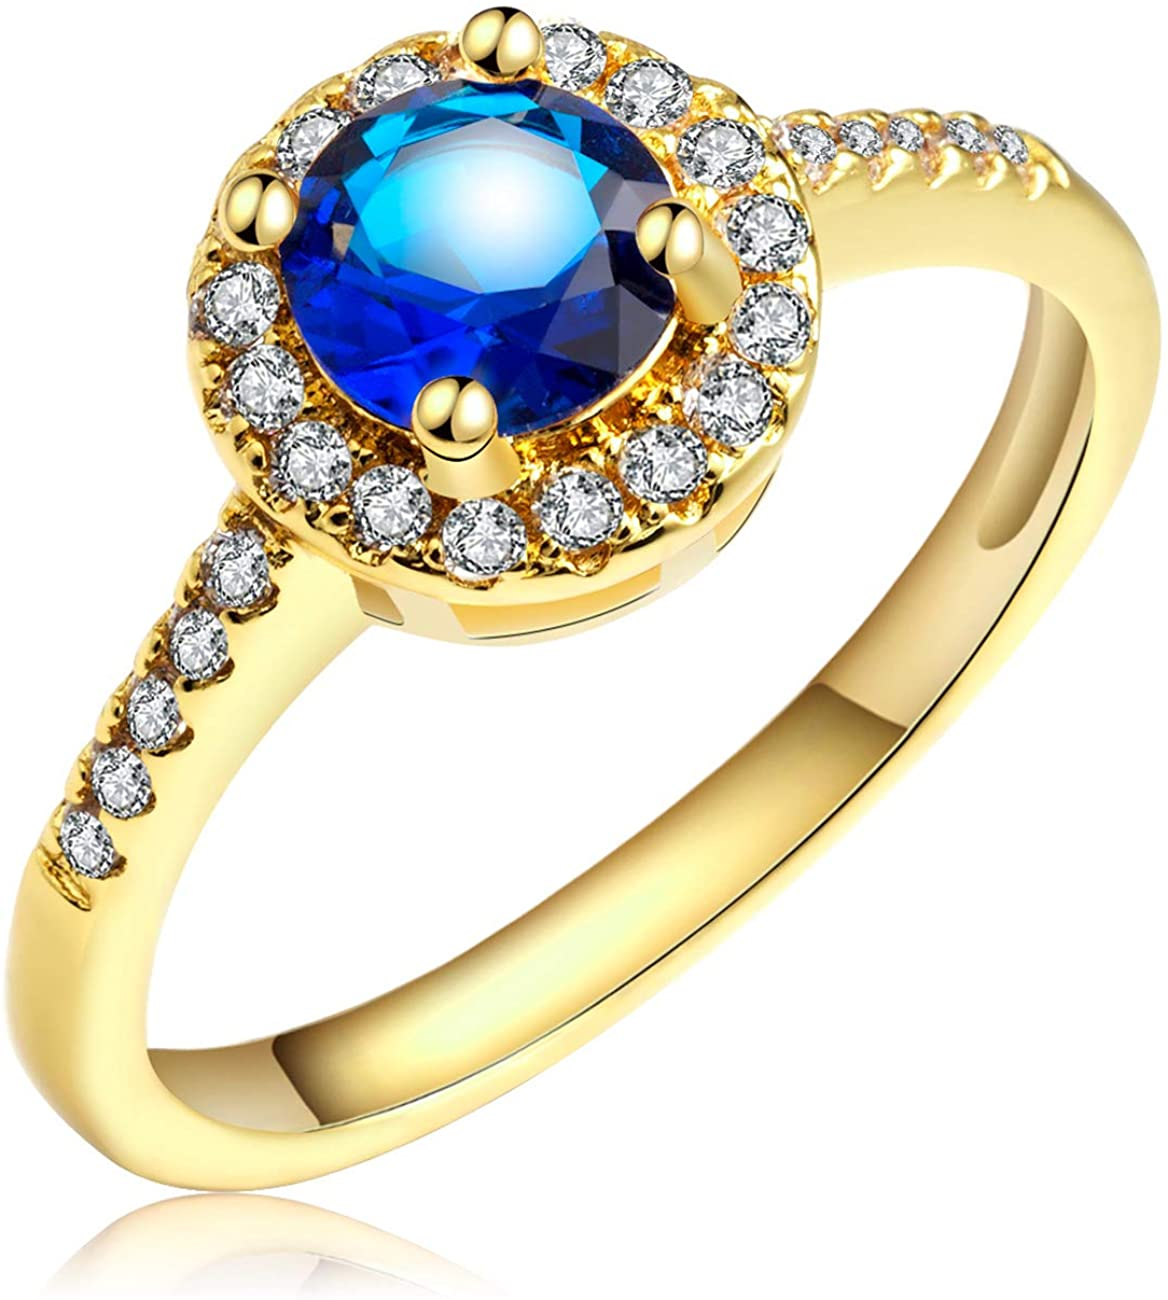 Anni Coco Wedding Jewelry 18K Gold Plated Round Cut Navy Blue Clear Cubic Zirconia CZ Ring for Women Lady Girl